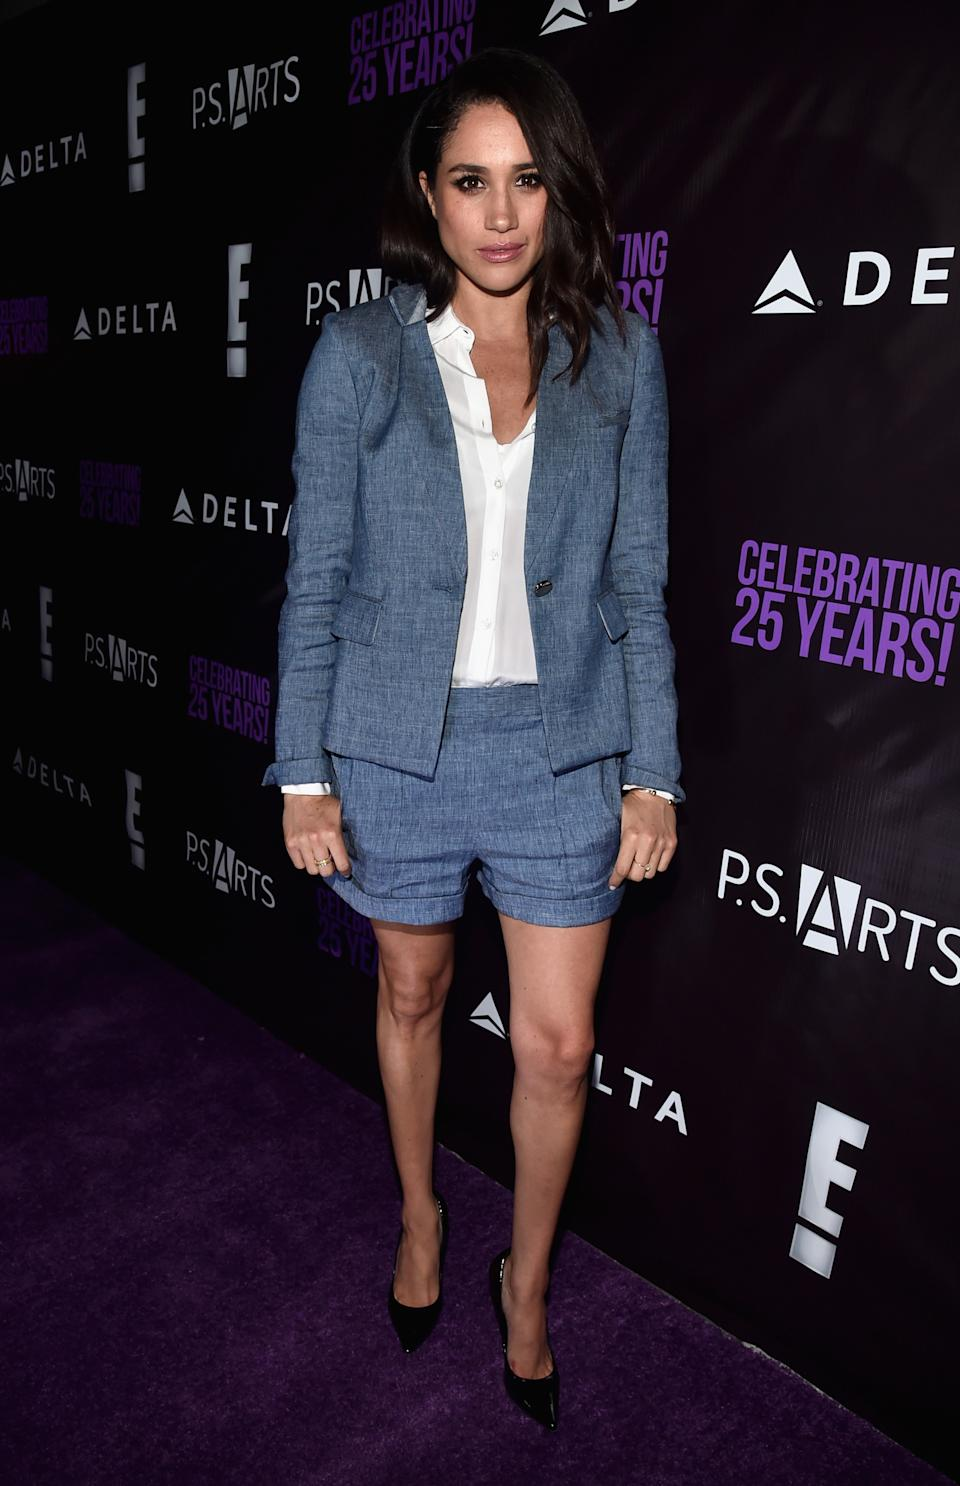 <<enter caption here>> at NeueHouse Hollywood on May 20, 2016 in Los Angeles, California.